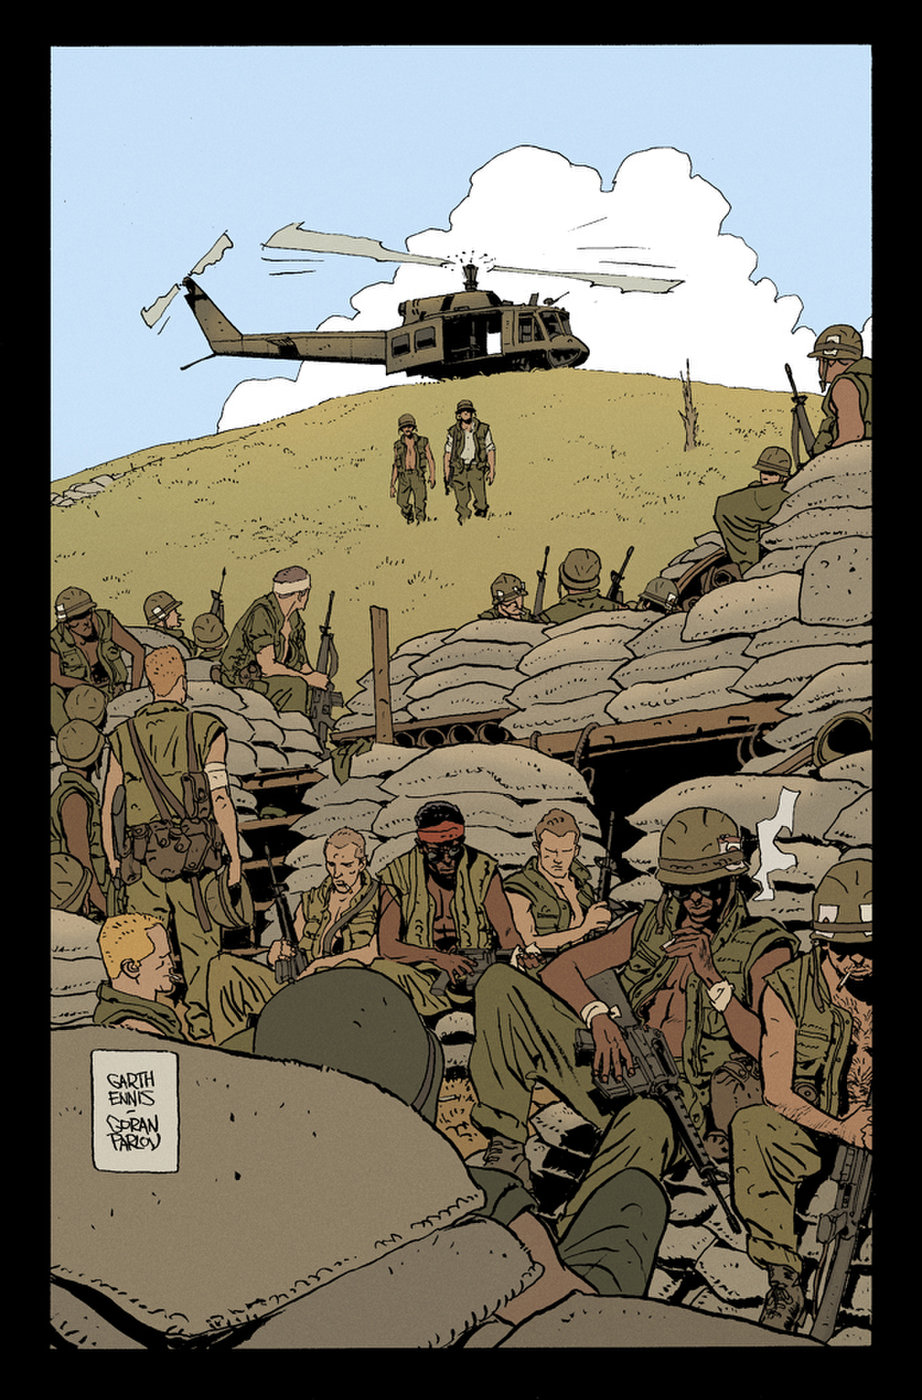 The Platoon Sample (colored version) by Goran Parlov